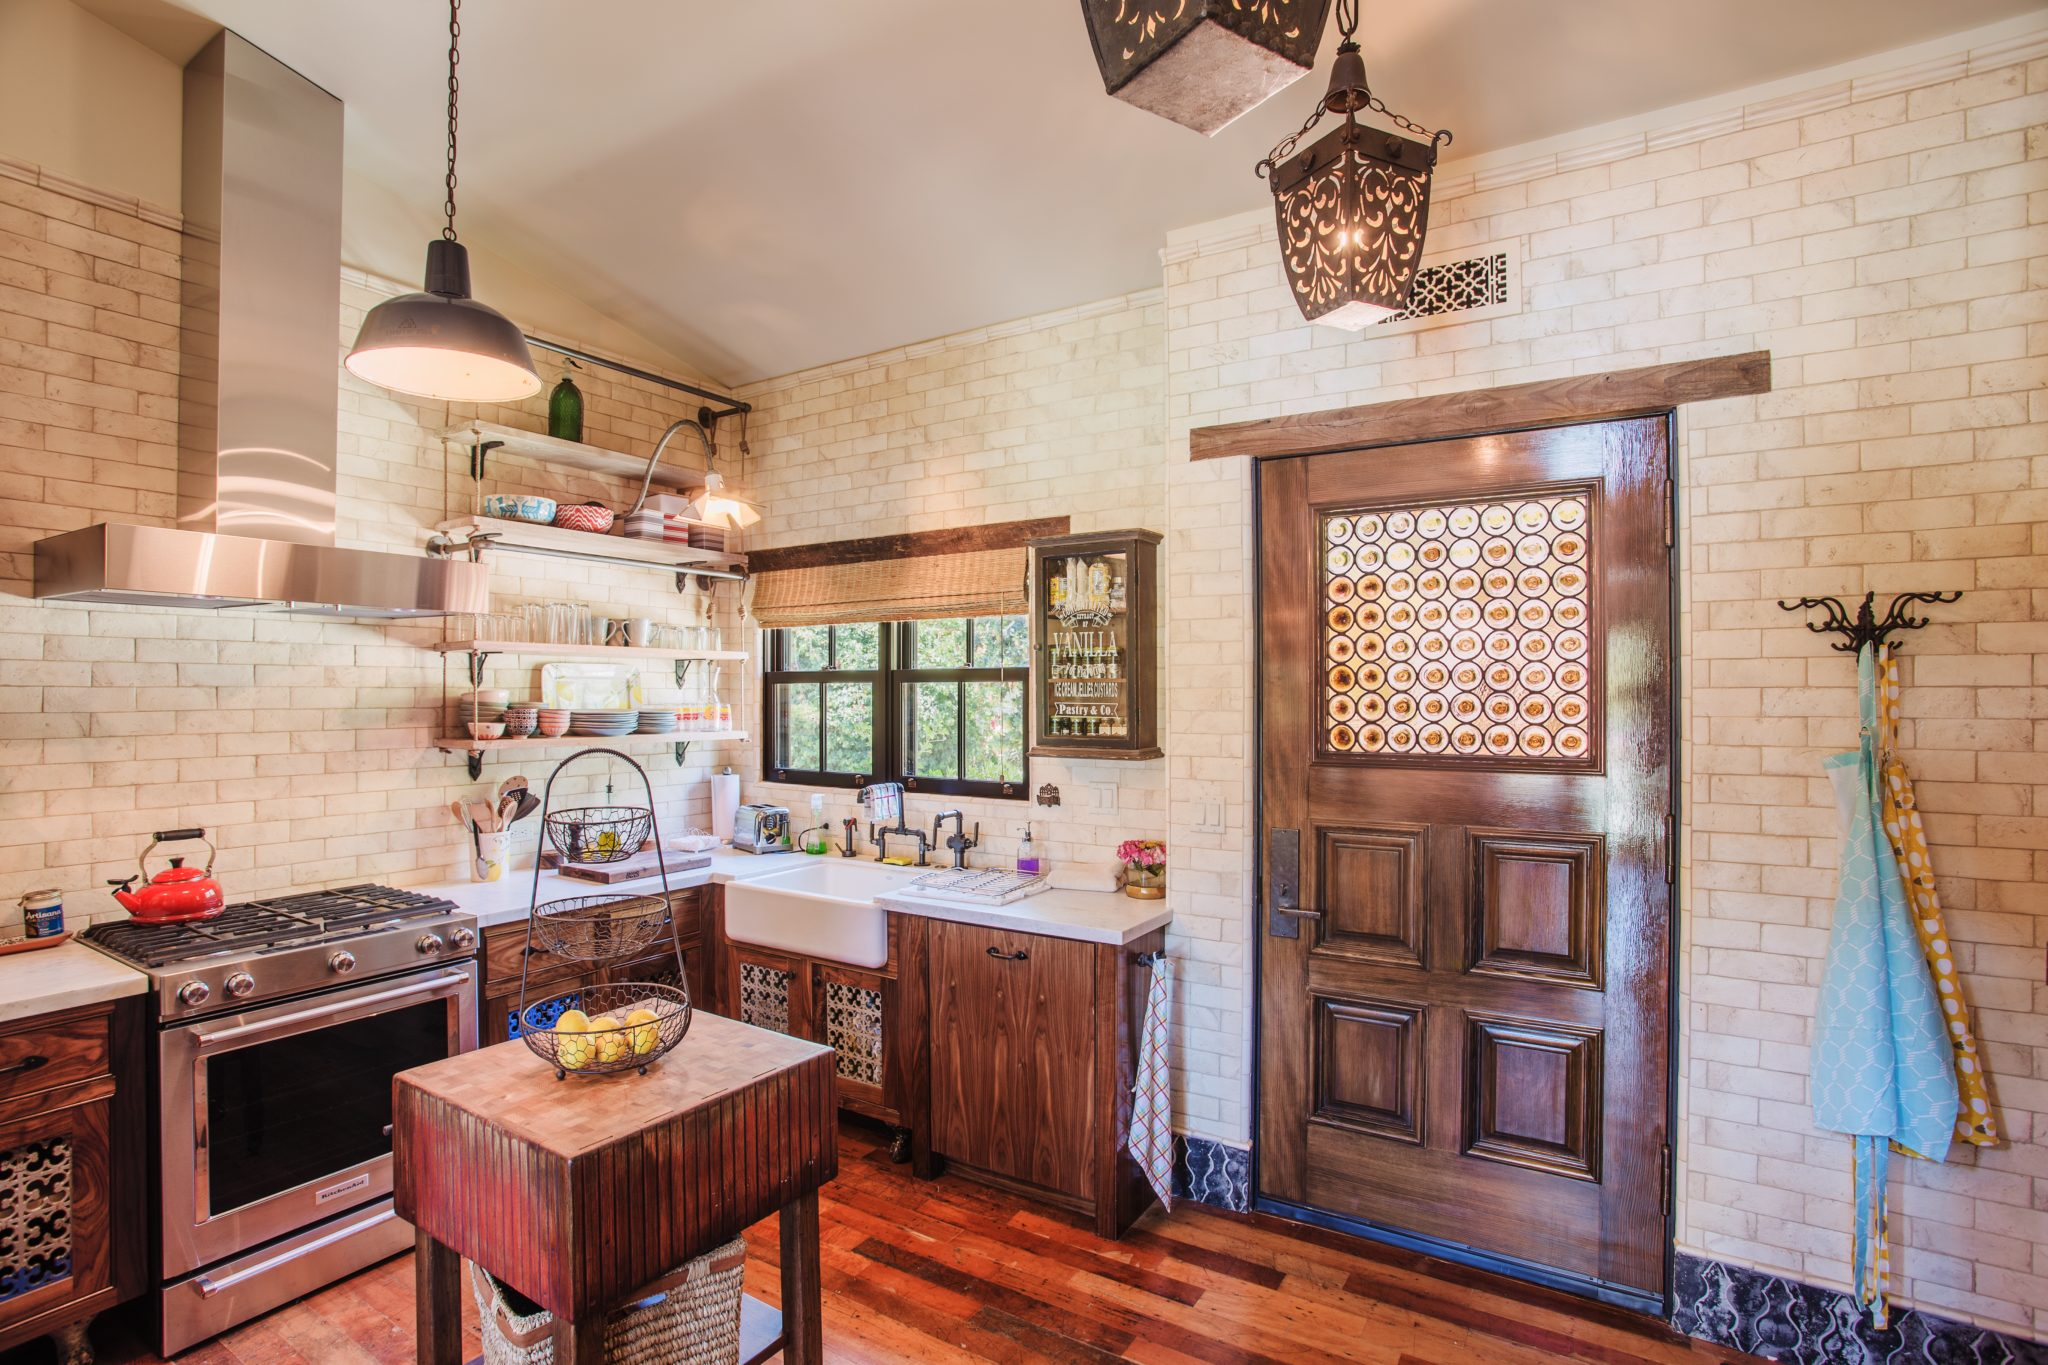 A rustic kitchen with neutral brick walls, hardwood floors and lantern lights. by Wade Weissmann Architecture Inc.